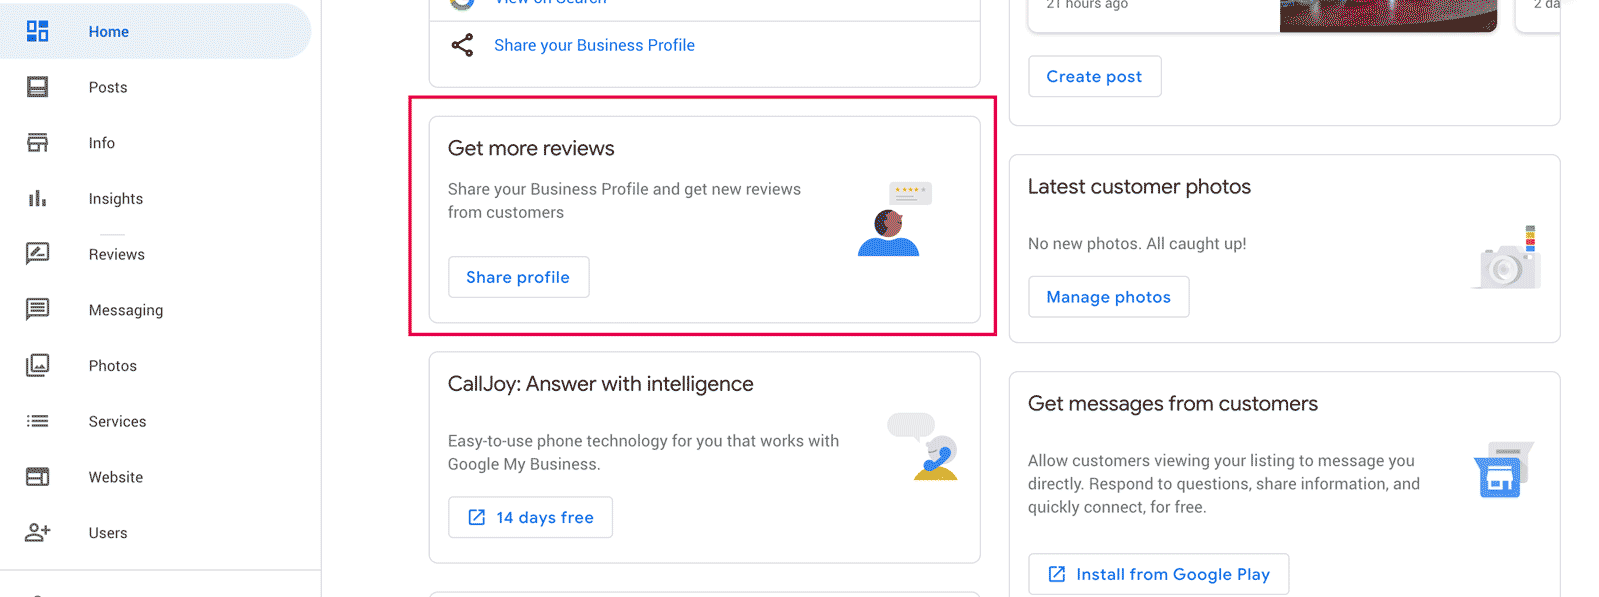 Get more review